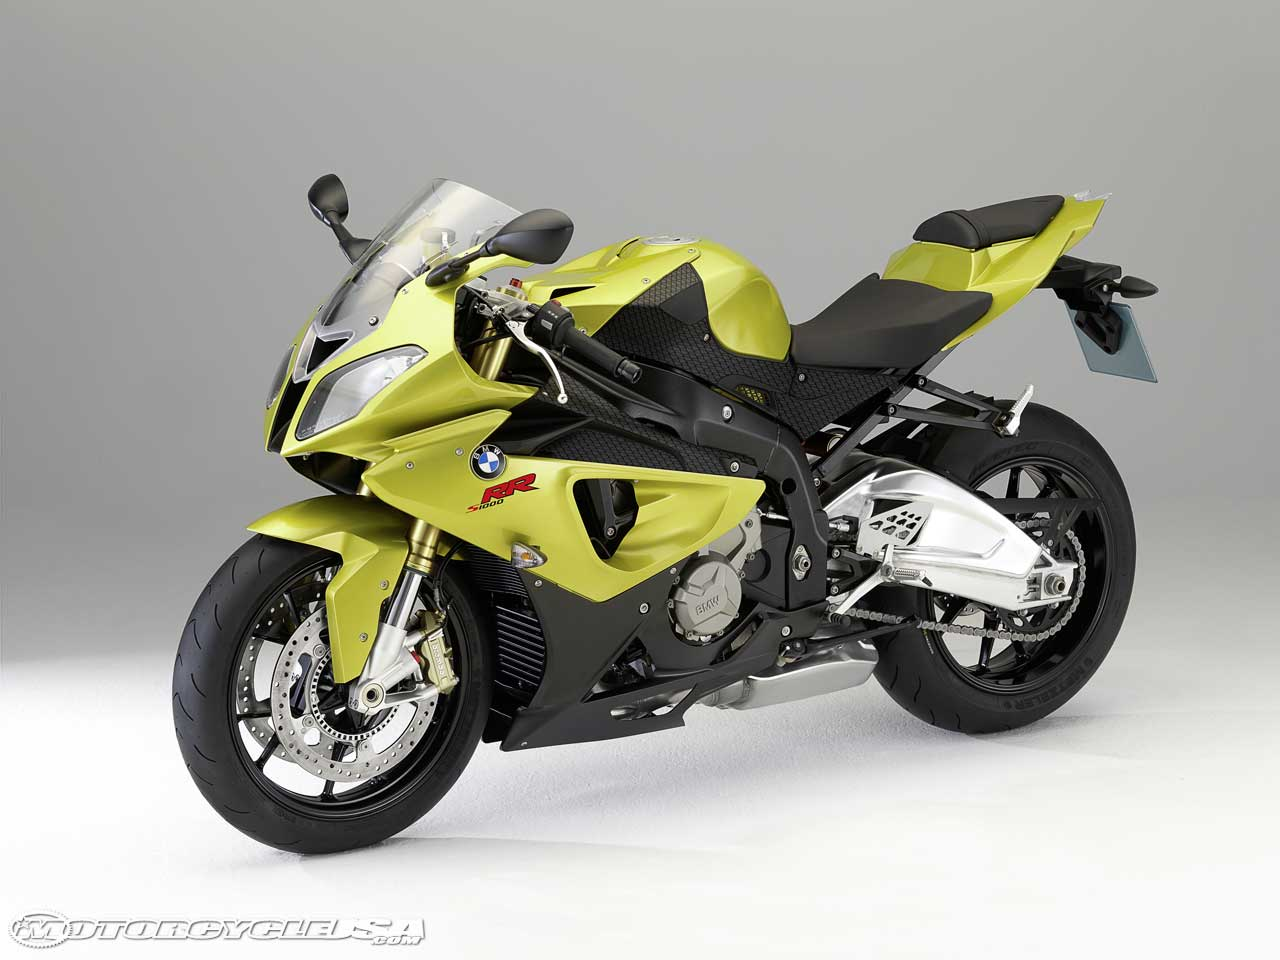 BMW S 1000 RR ABS 2010 images #8975